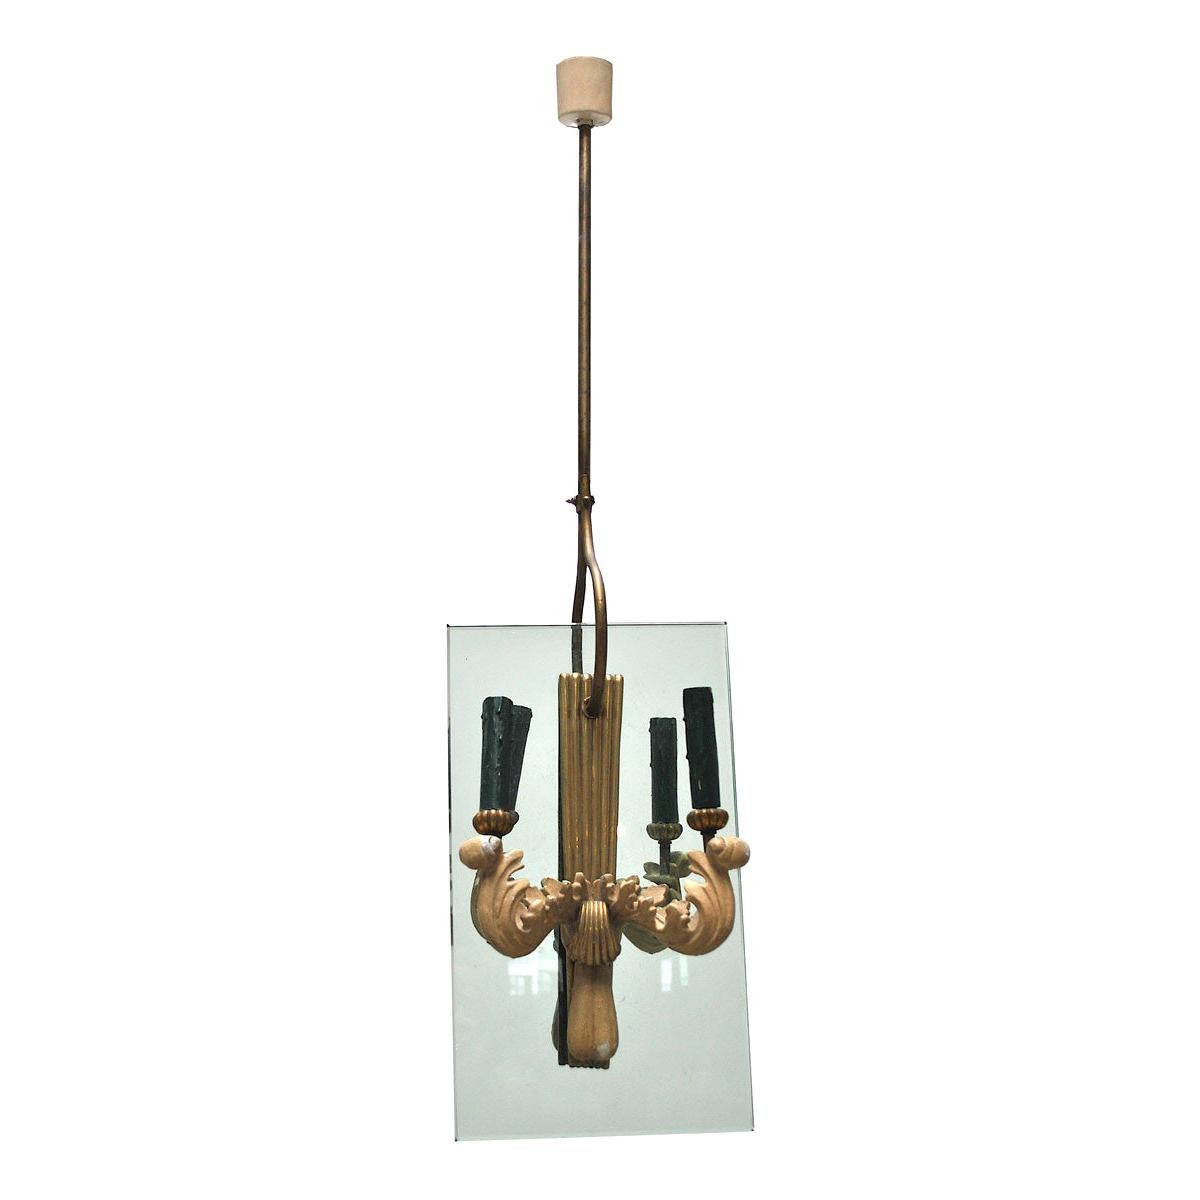 Pietro Chiesa Style Midcentury Chandelier in Brass and Crystal, 1940s